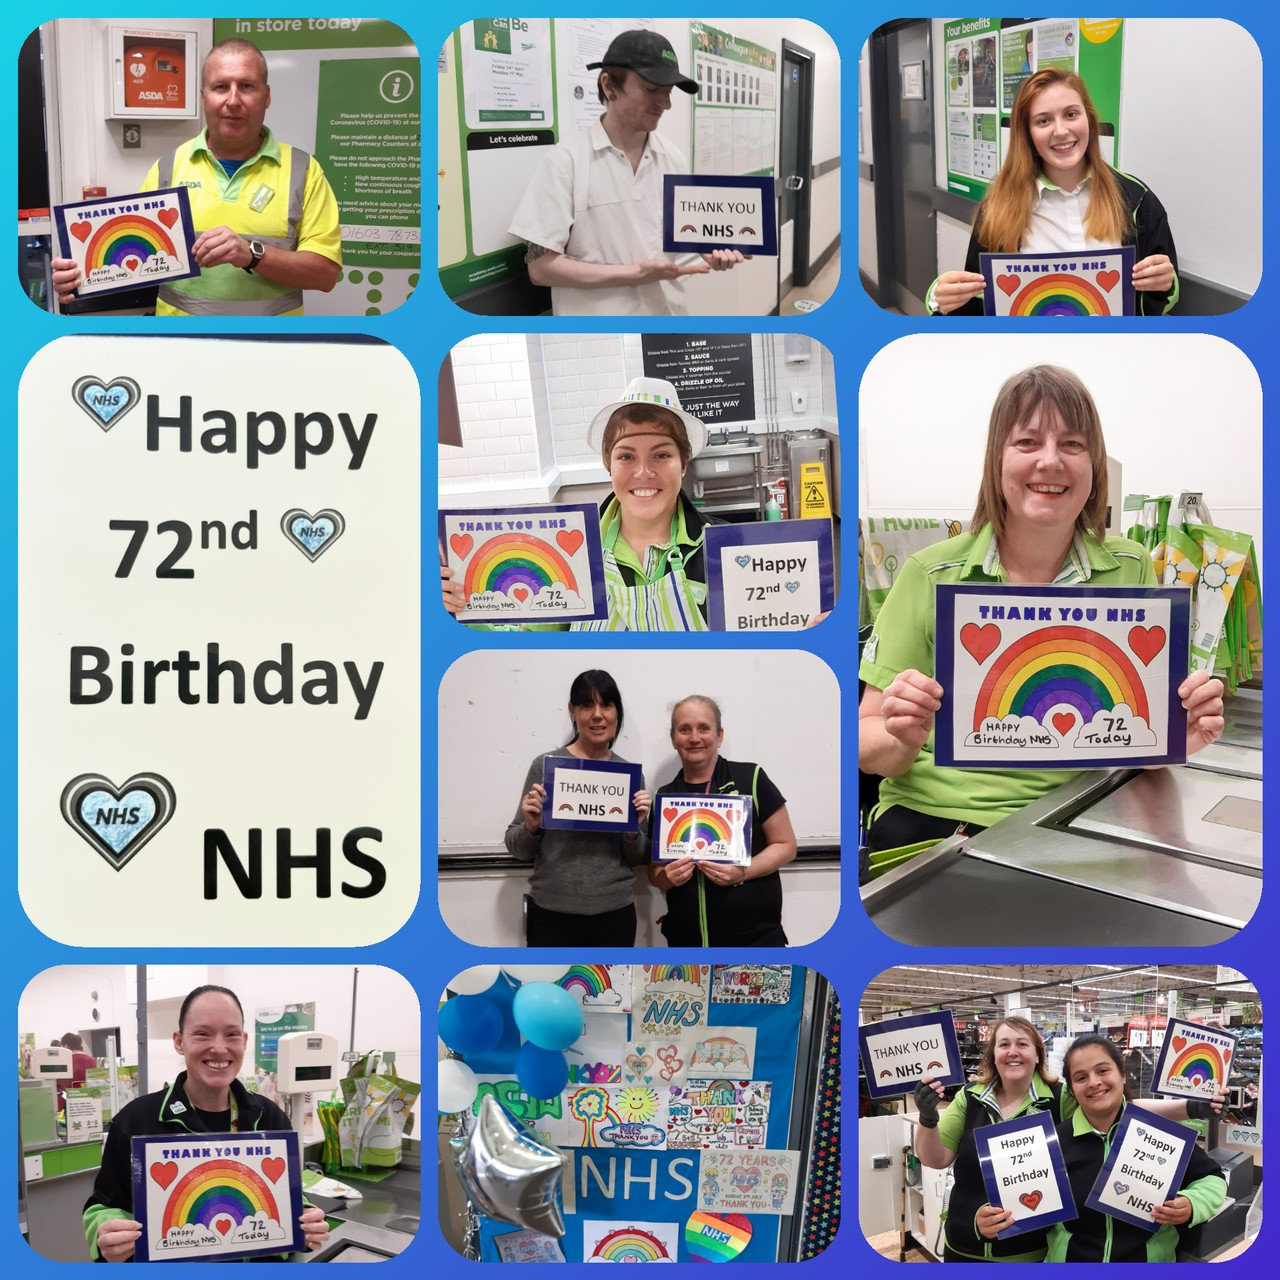 Happy 72nd Birthday NHS from everyone at Asda Norwich 🥰🌈🥰 | Asda Norwich